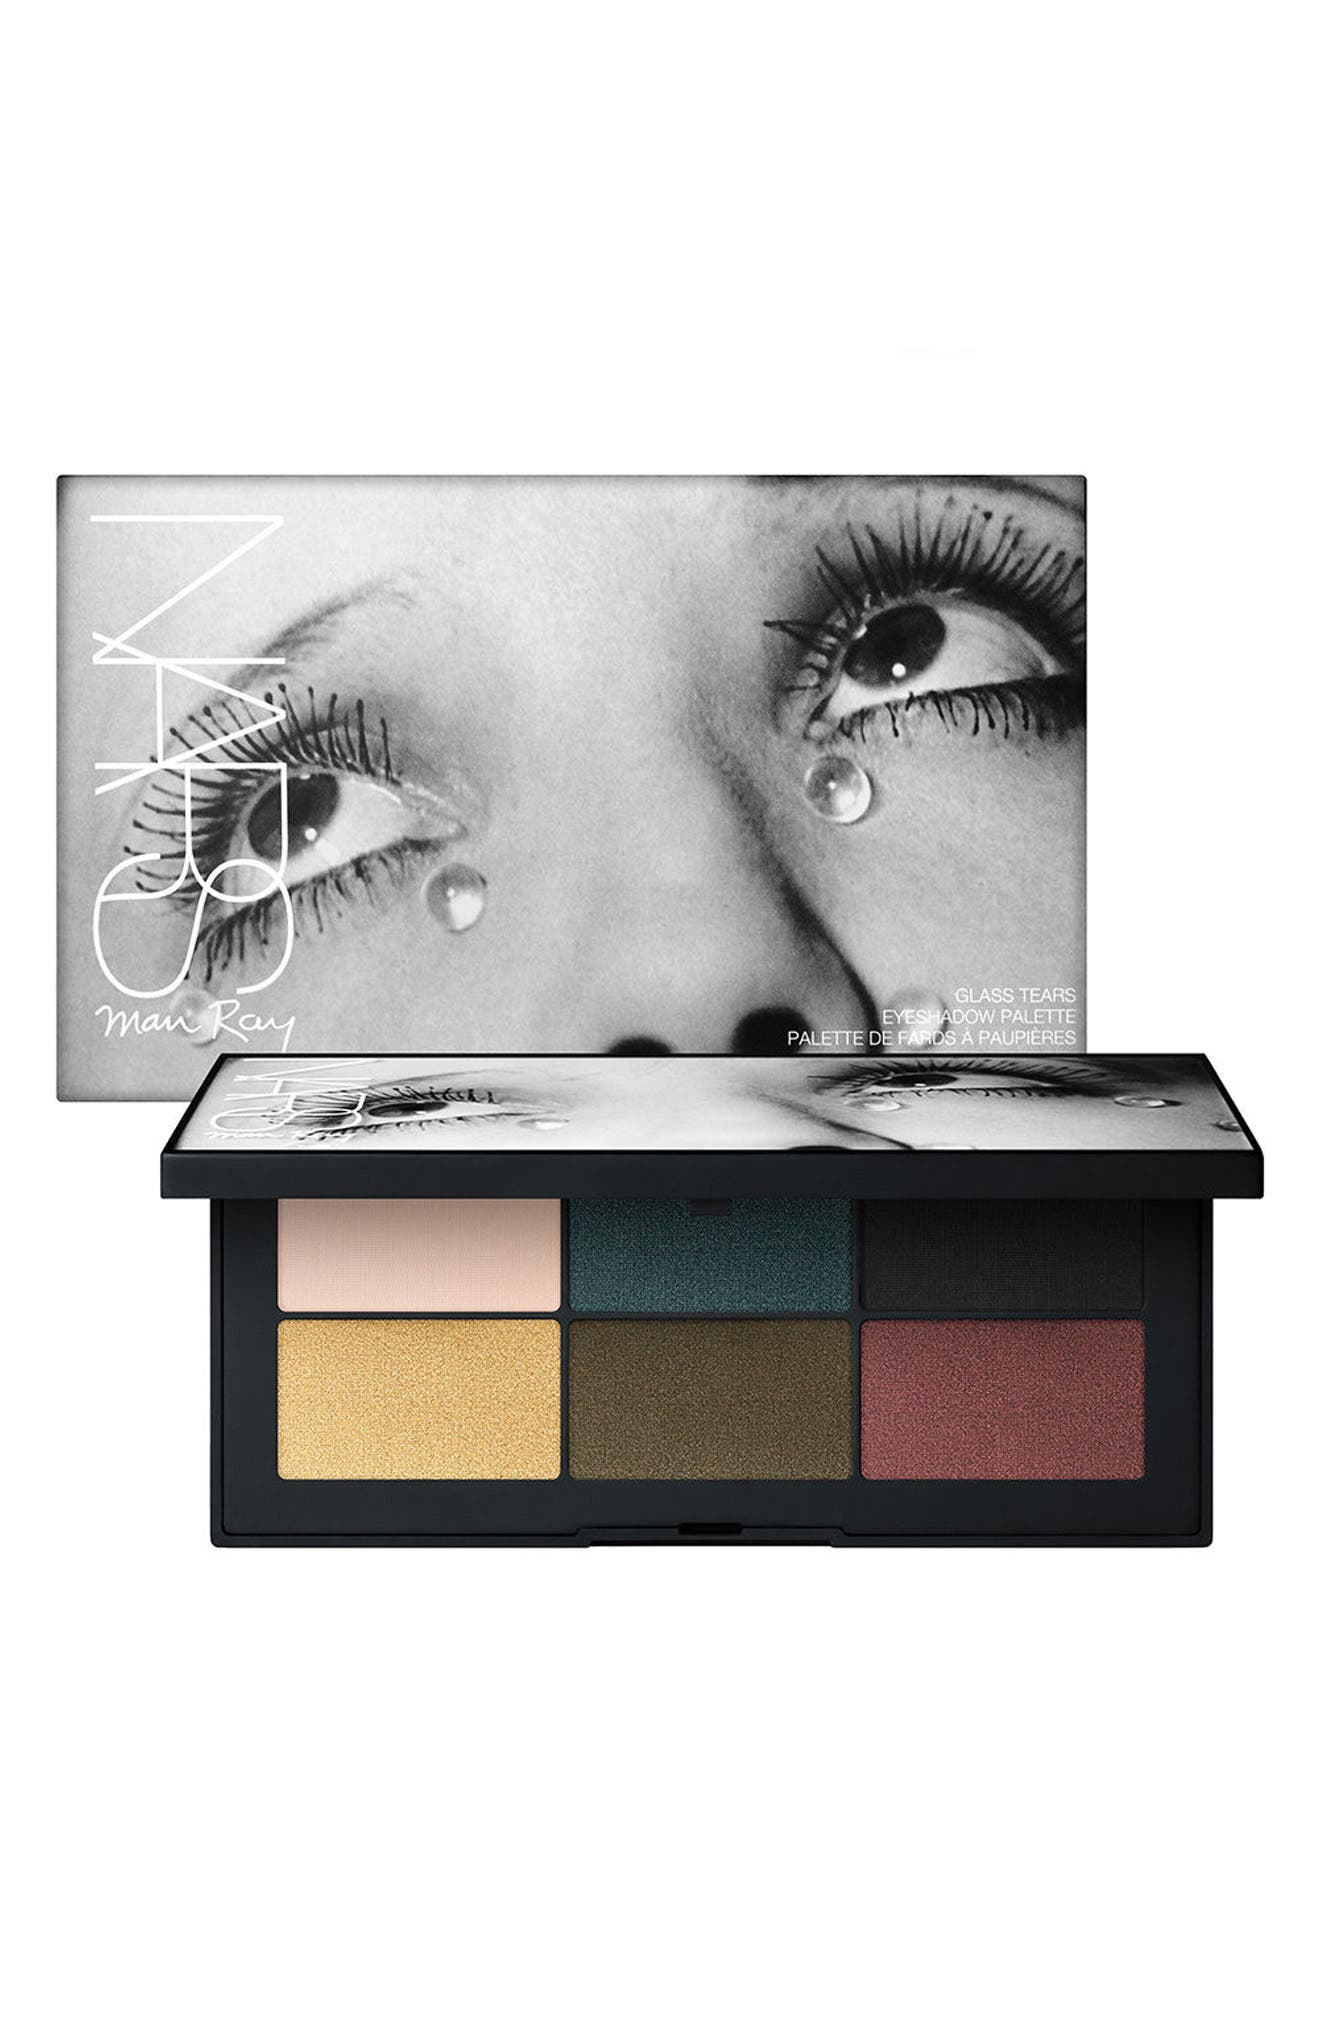 Alternate Image 1 Selected - NARS Man Ray Glass Tears Eyeshadow Palette ($155.68 Value)